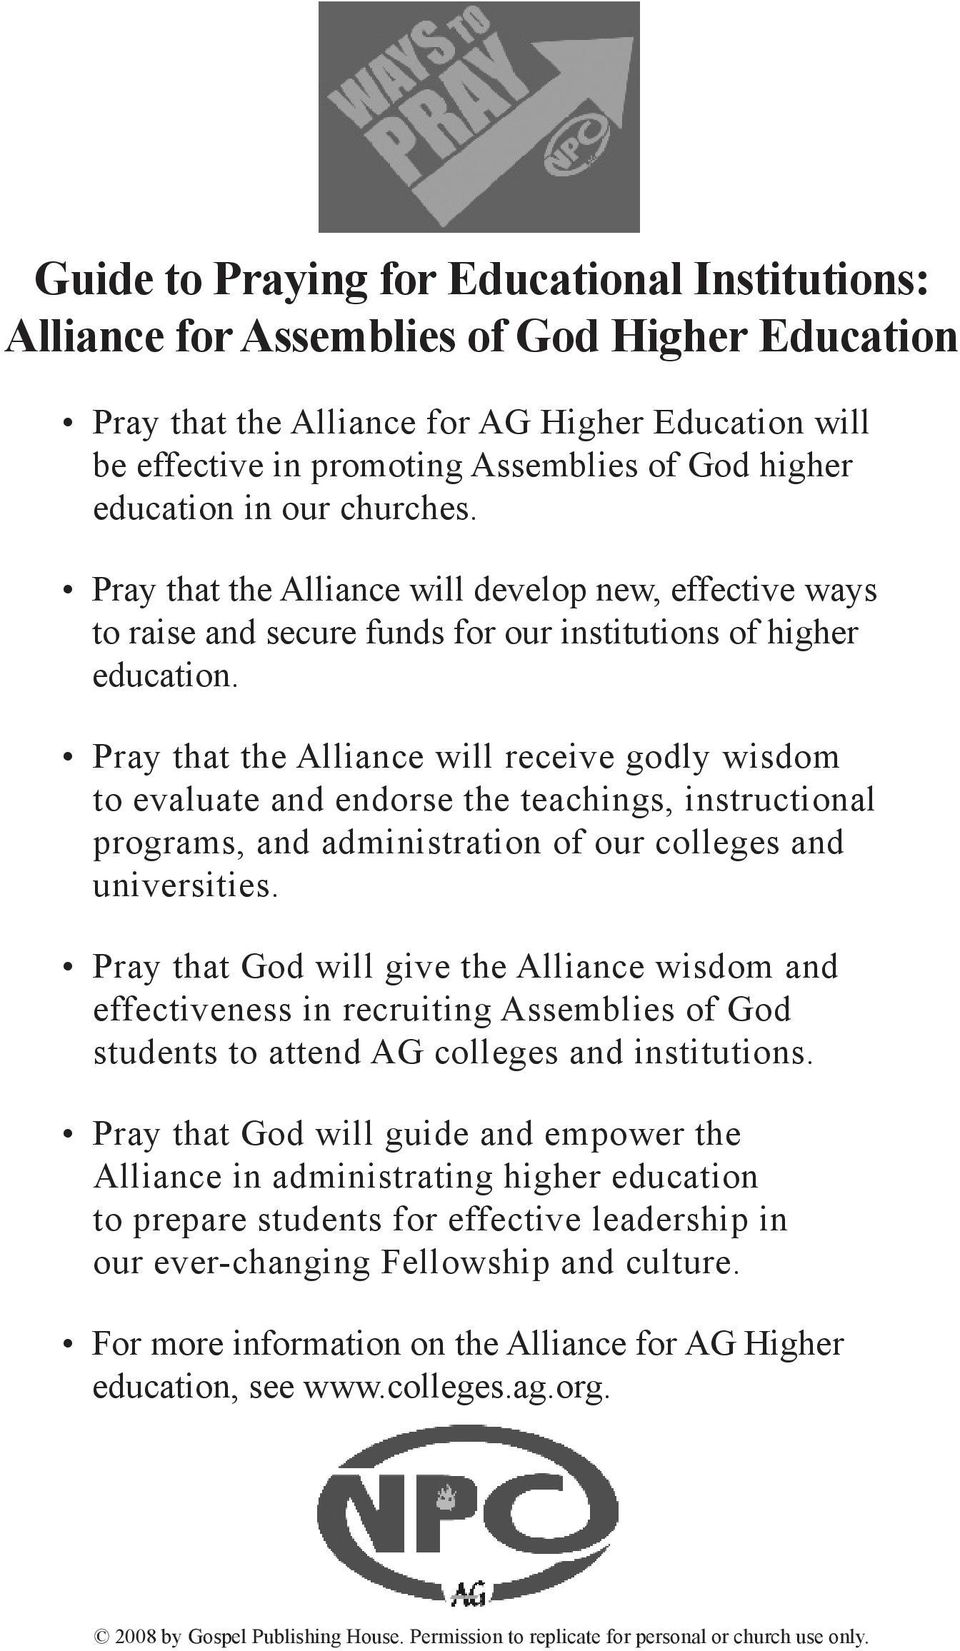 Pray that the Alliance will receive godly wisdom to evaluate and endorse the teachings, instructional programs, and administration of our colleges and universities.